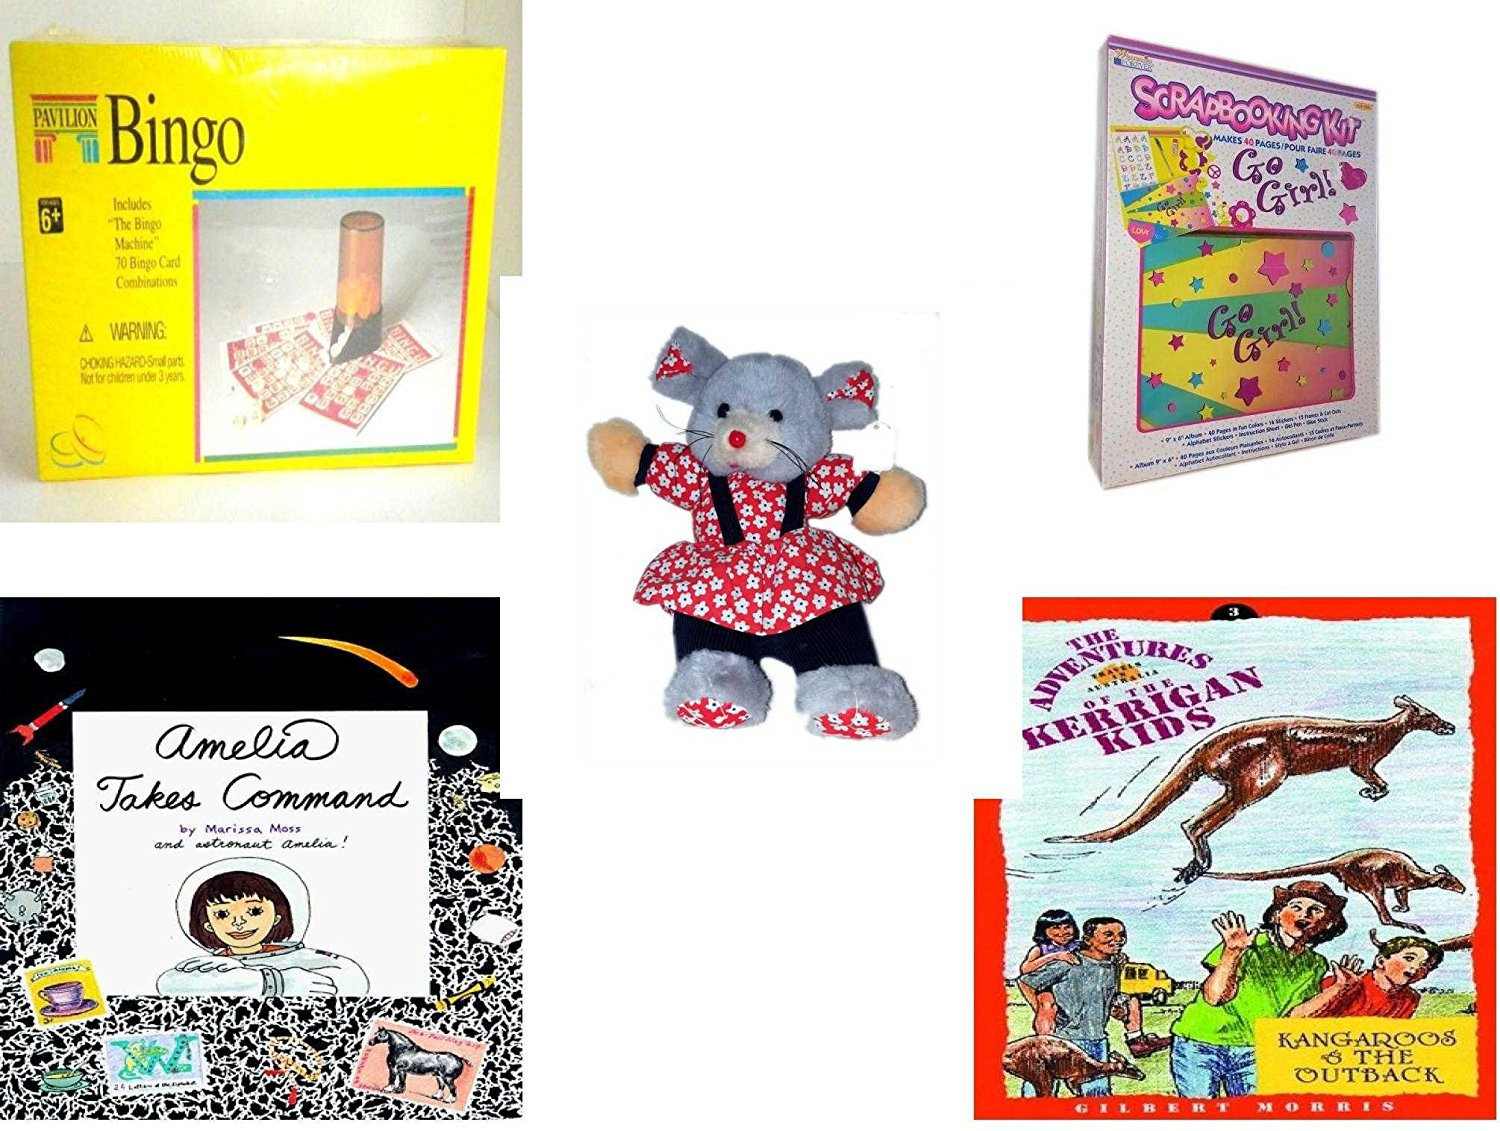 """Girl's Gift Bundle - Ages 6-12 [5 Piece] - Pavilion Bingo Game - Memories Forever Go Girl. Scrapbooking Kit - Play-By-Play Red Flower Patterned Girl Mouse Plush 11"""" - Amelia Takes Command Hardcover"""